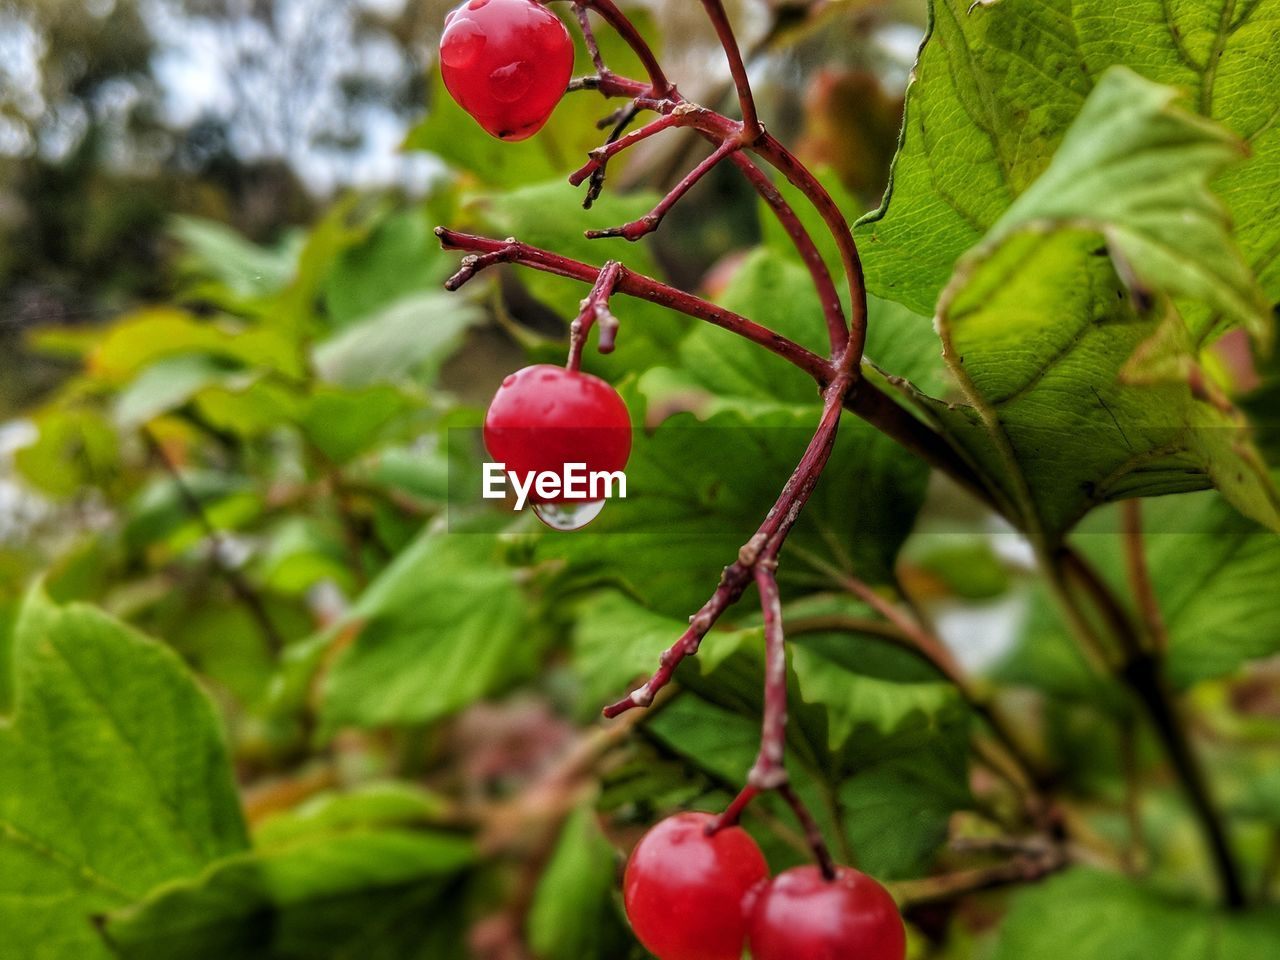 healthy eating, fruit, food and drink, food, growth, red, plant, freshness, plant part, leaf, close-up, wellbeing, tree, nature, green color, beauty in nature, focus on foreground, no people, day, branch, outdoors, ripe